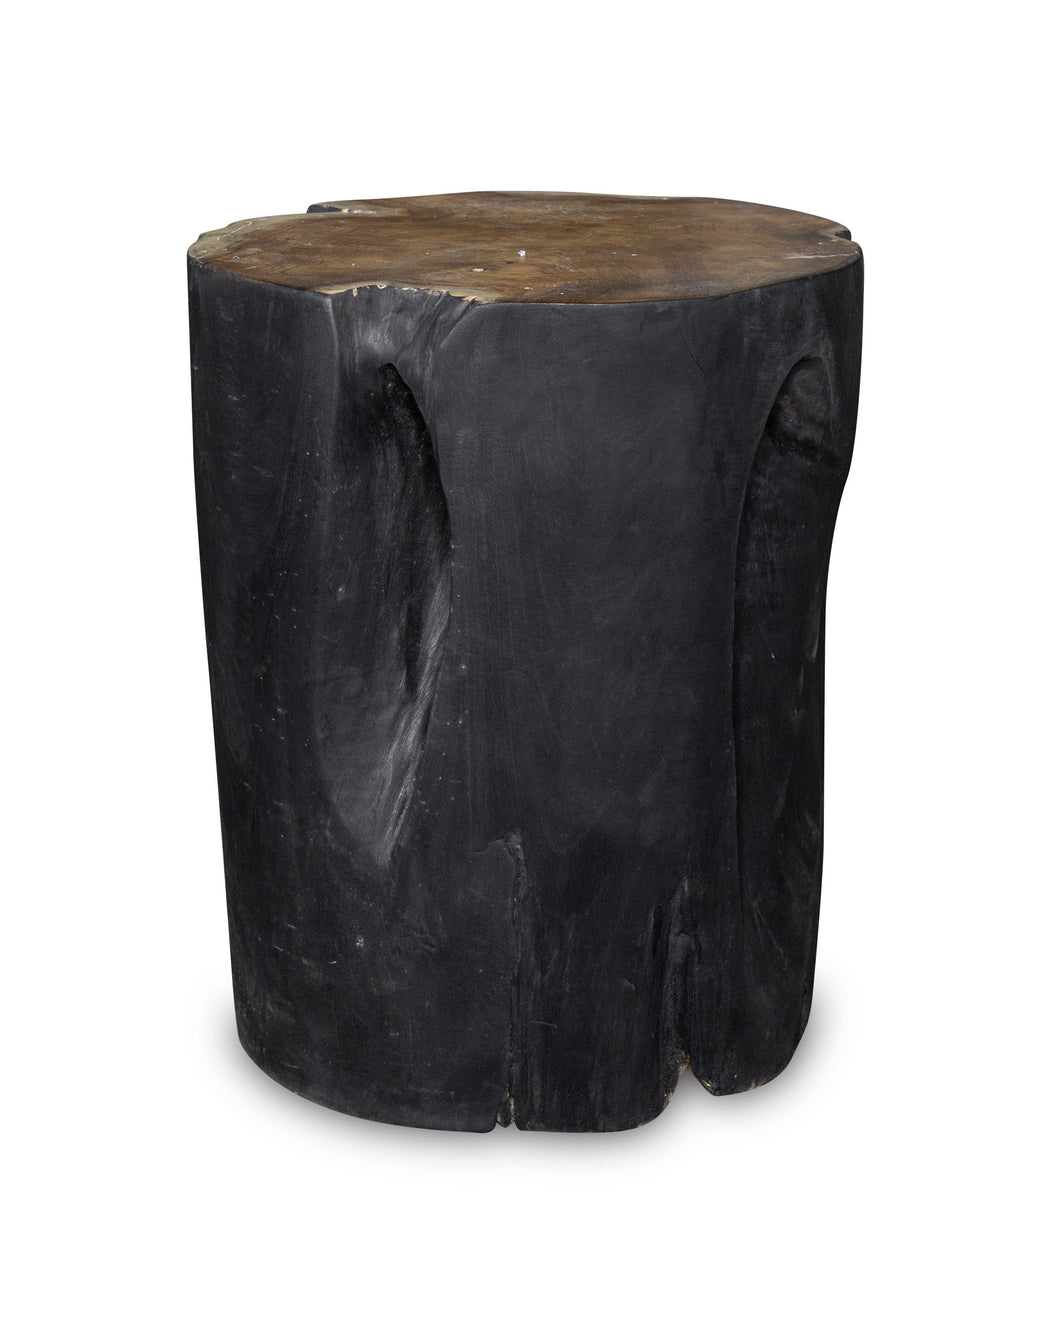 Solid Teak Wood Side Table, Natural Black Tree Stump Stool or End Table #14    17.75